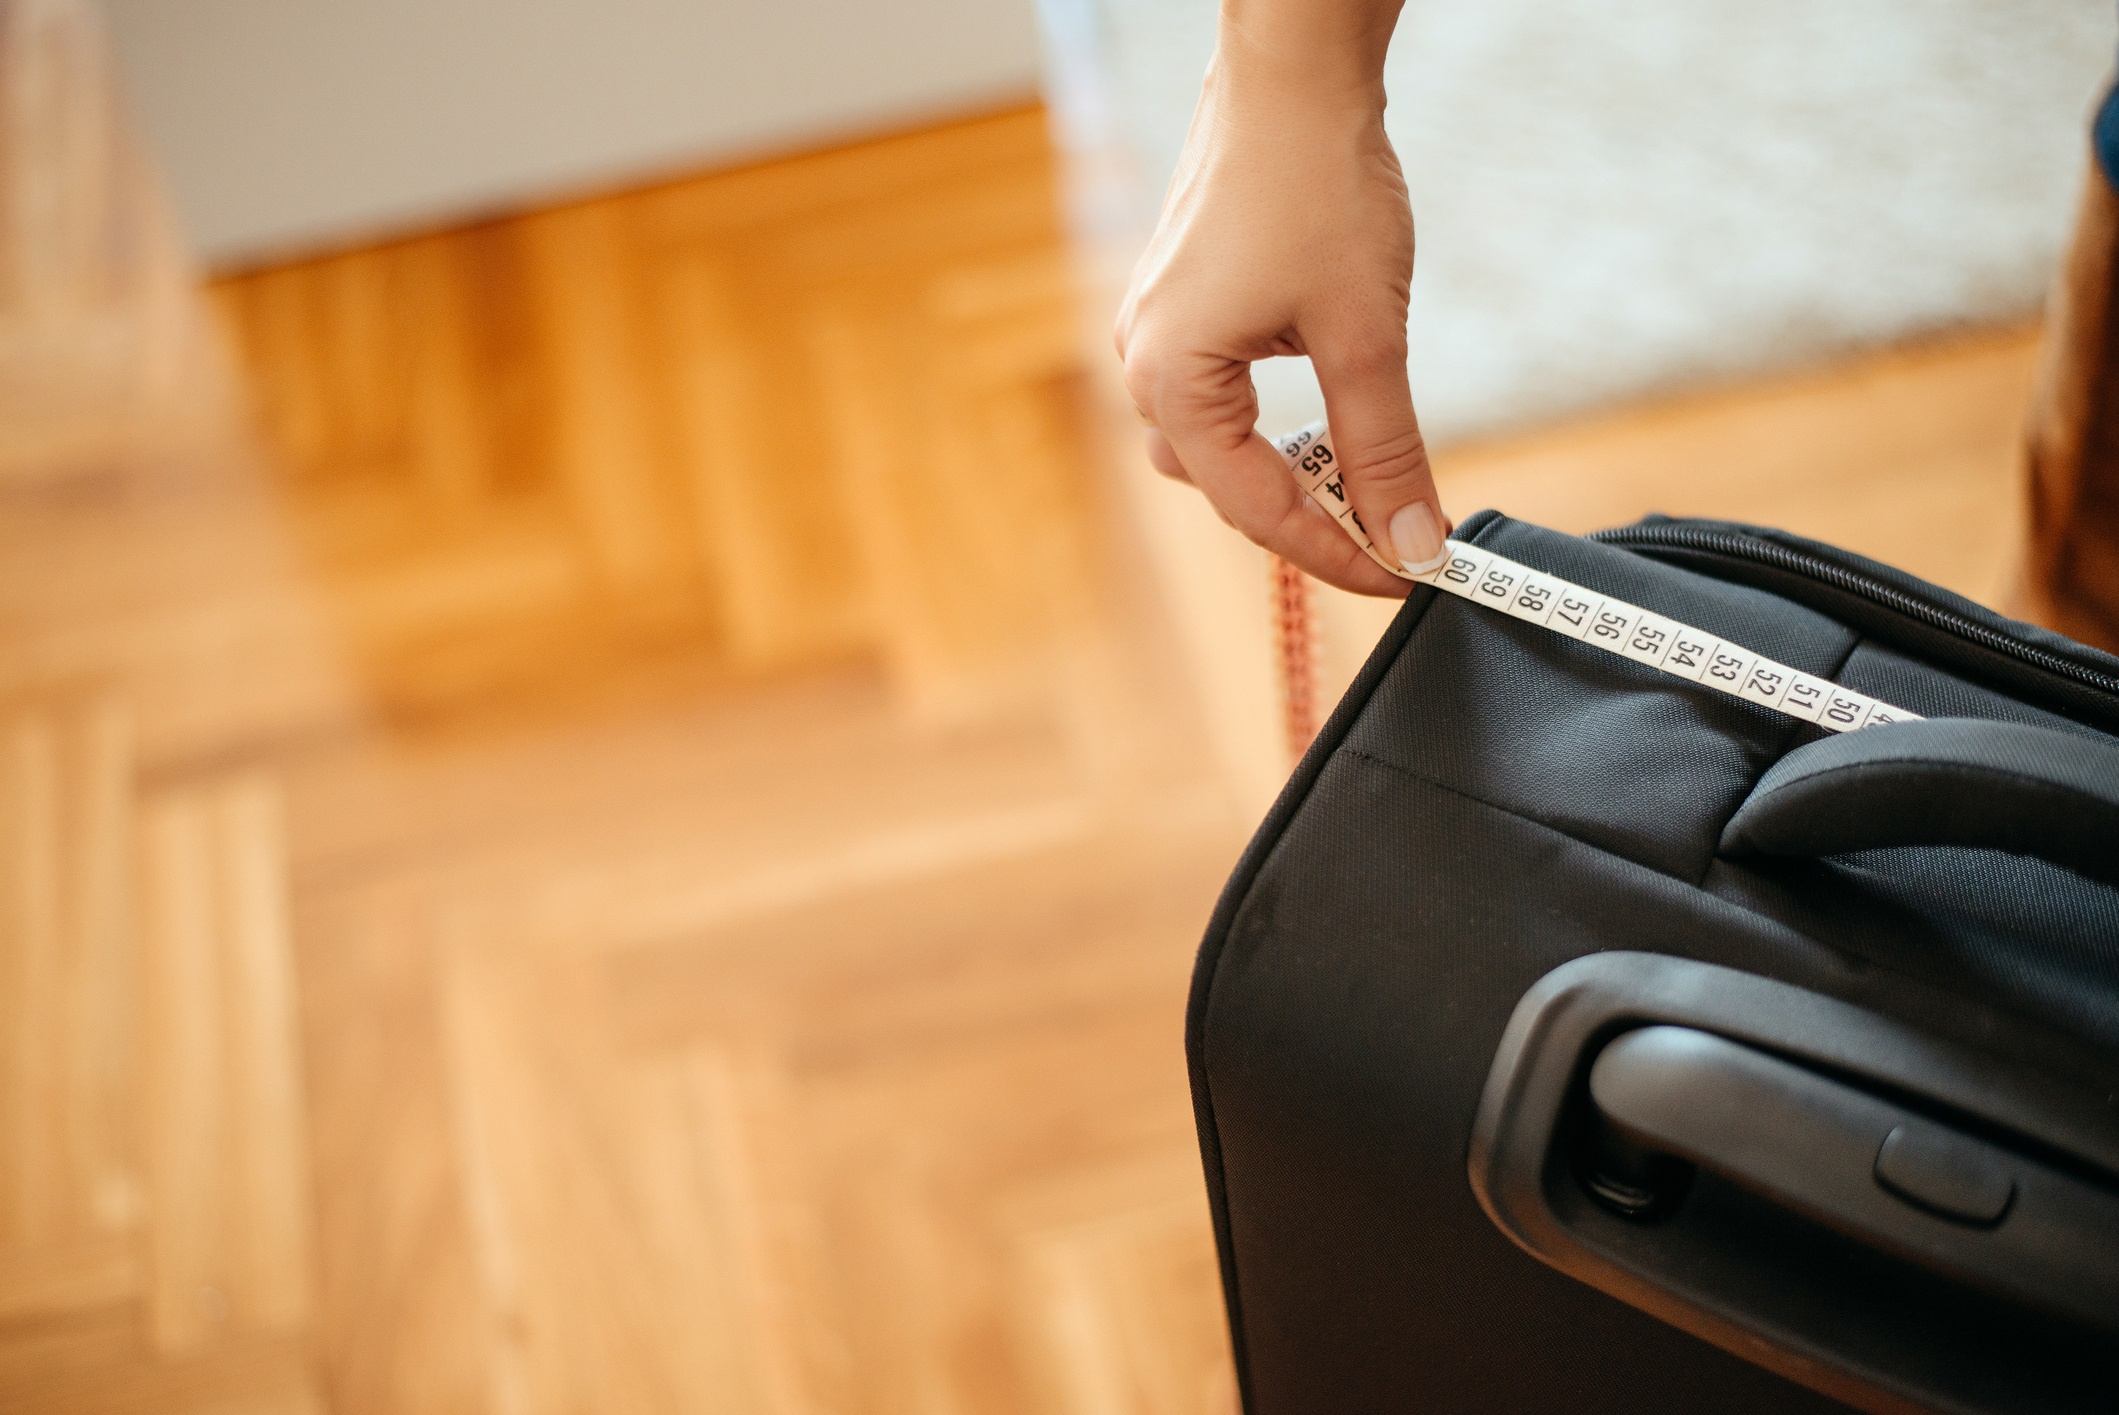 Close up woman hand using measuring tape on a suitcase